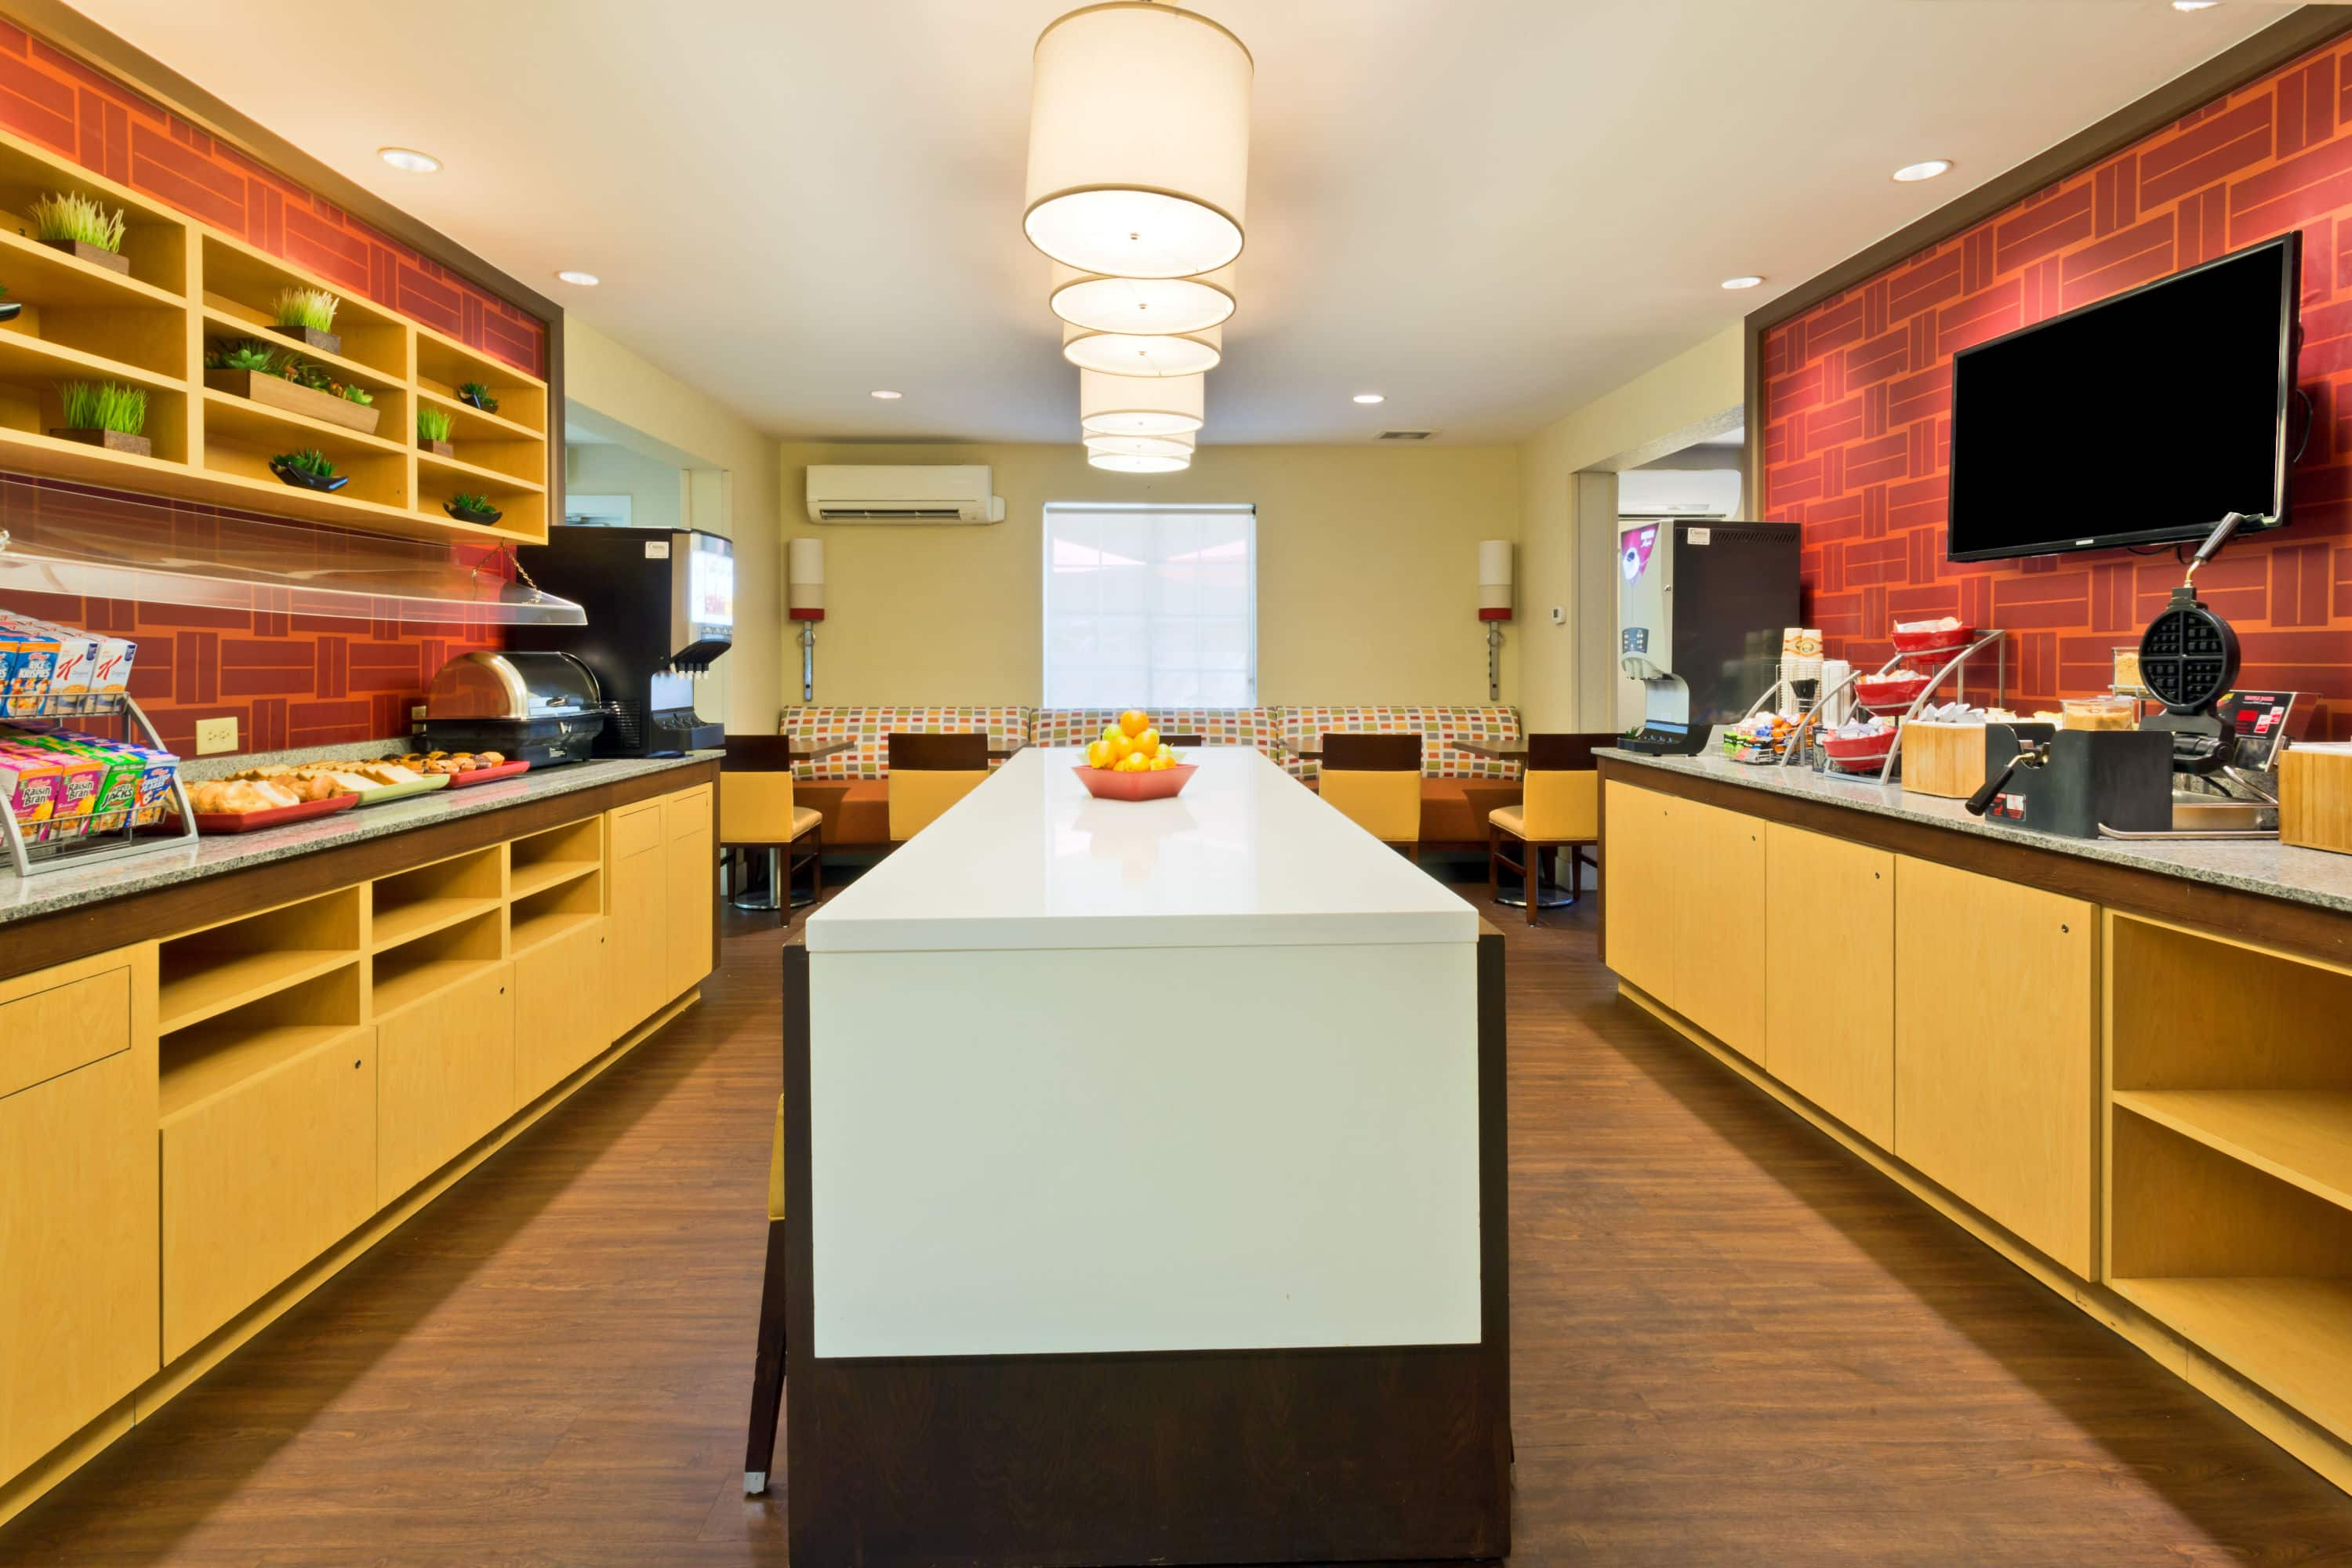 Property Amenity At Hawthorn Suites By Wyndham Orlando Altamonte Springs In  Altamonte Springs, Florida